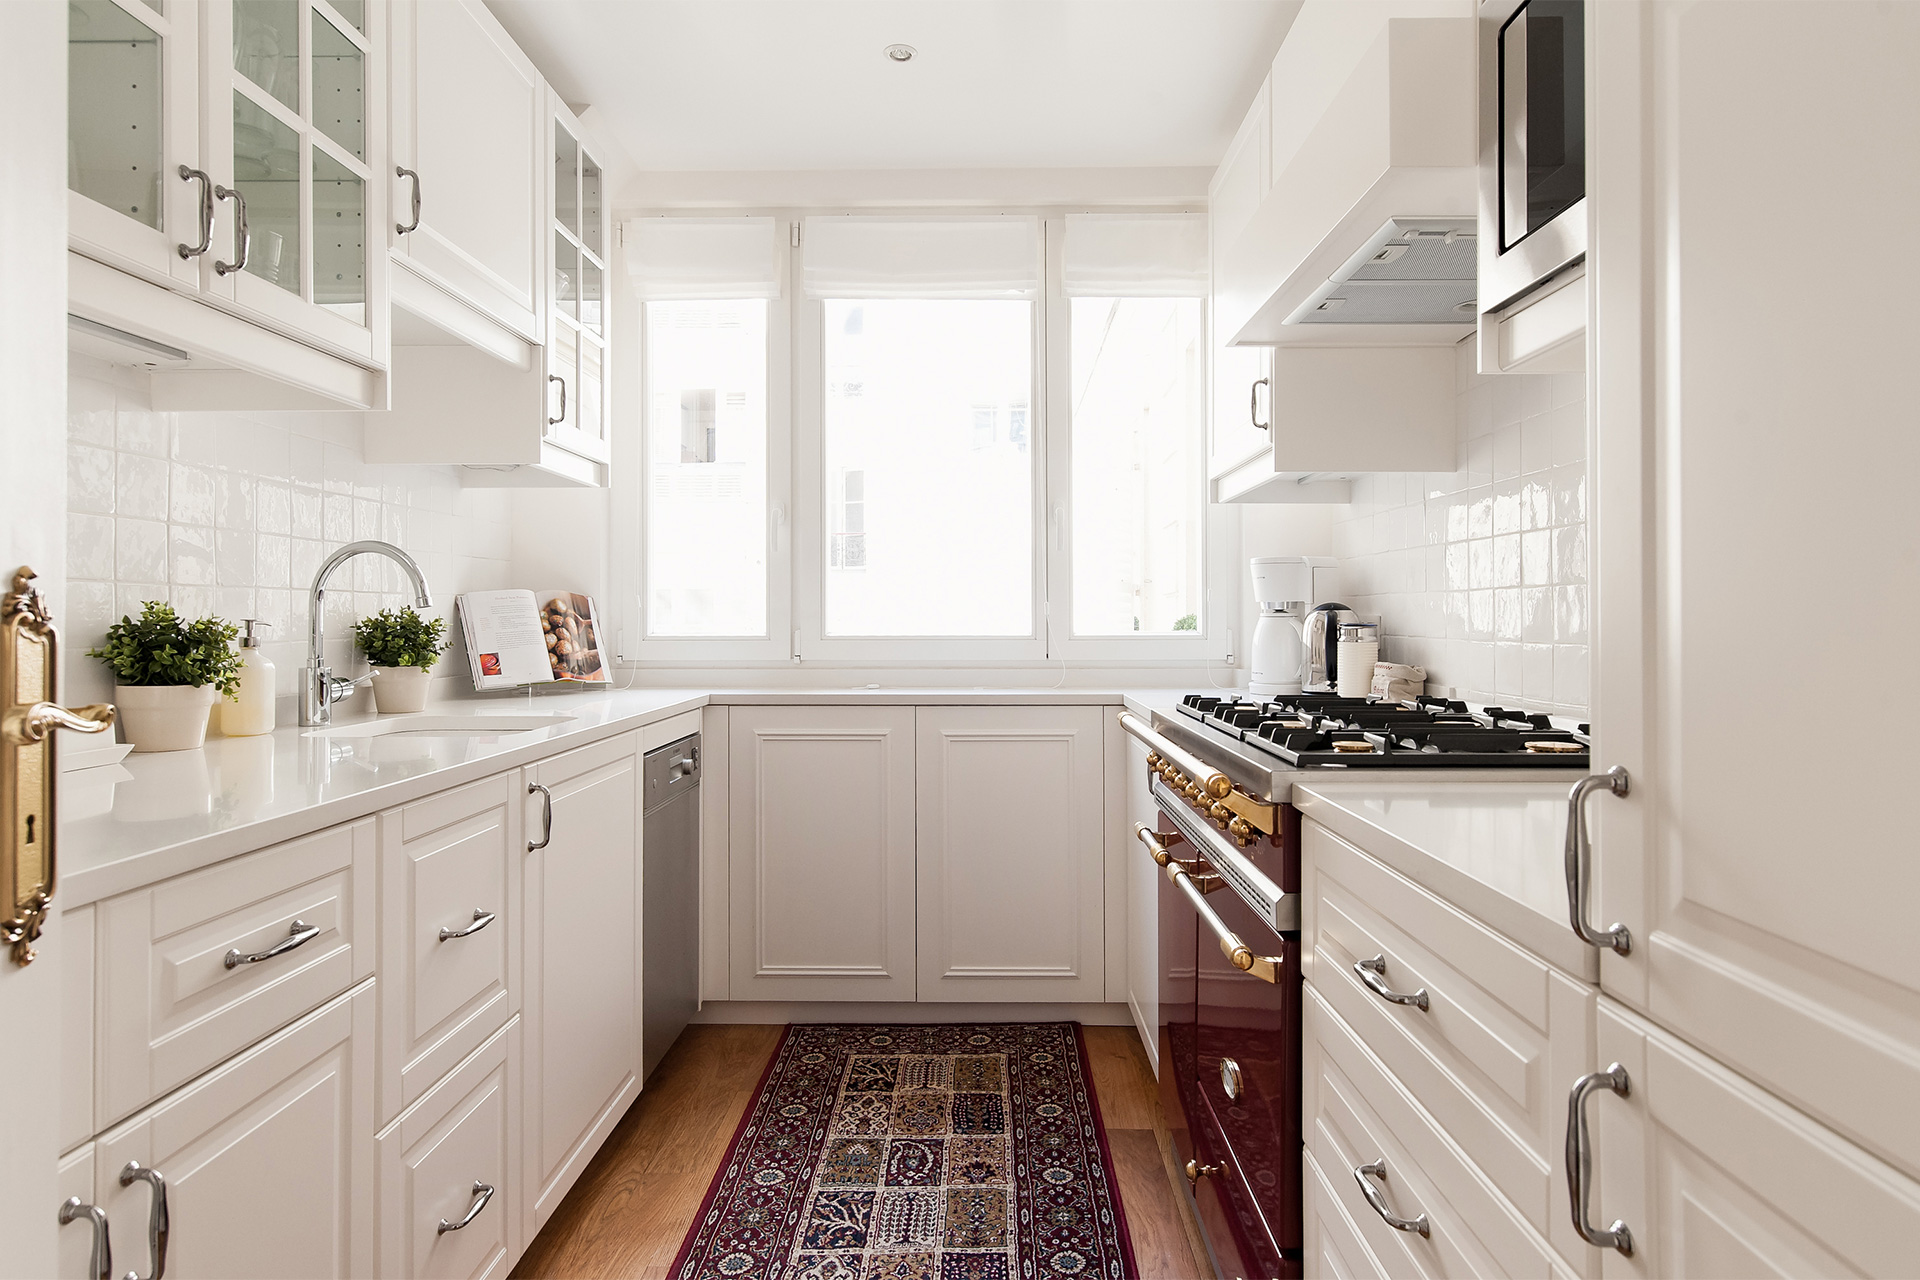 Kitchen cabinets in the Montagny vacation rental offered by Paris Perfect